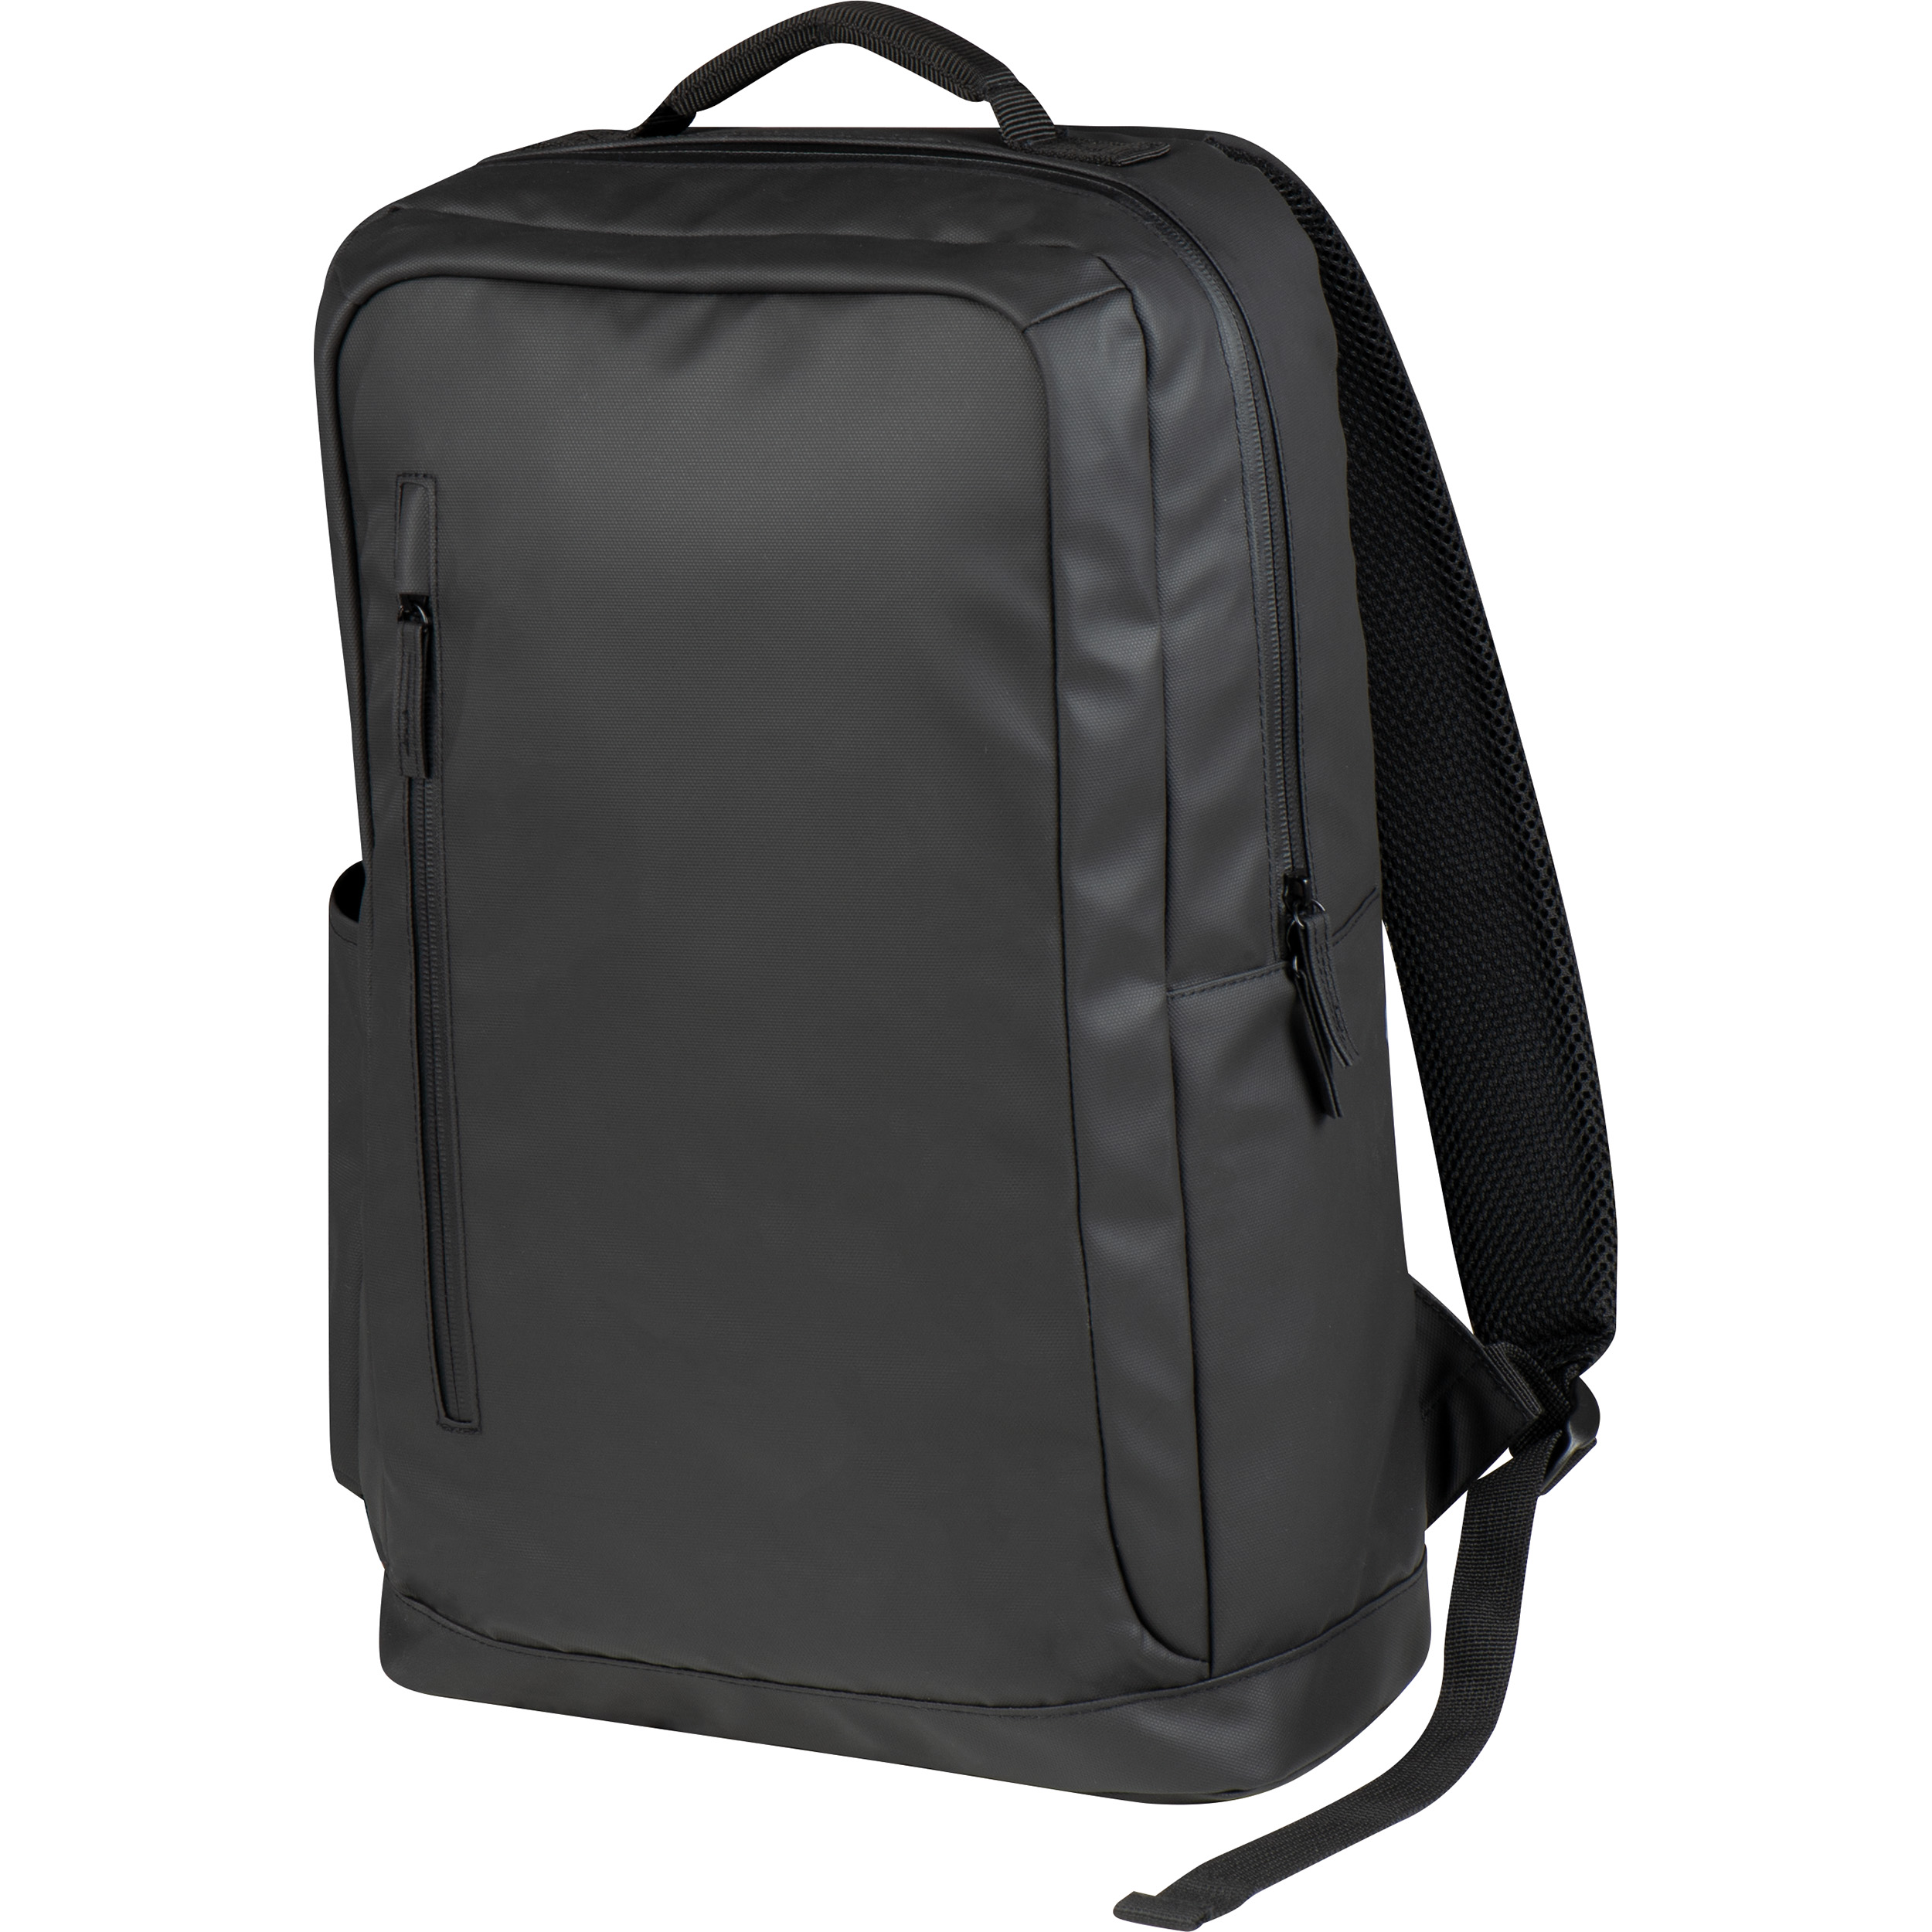 High-quality, water-resistant backpack